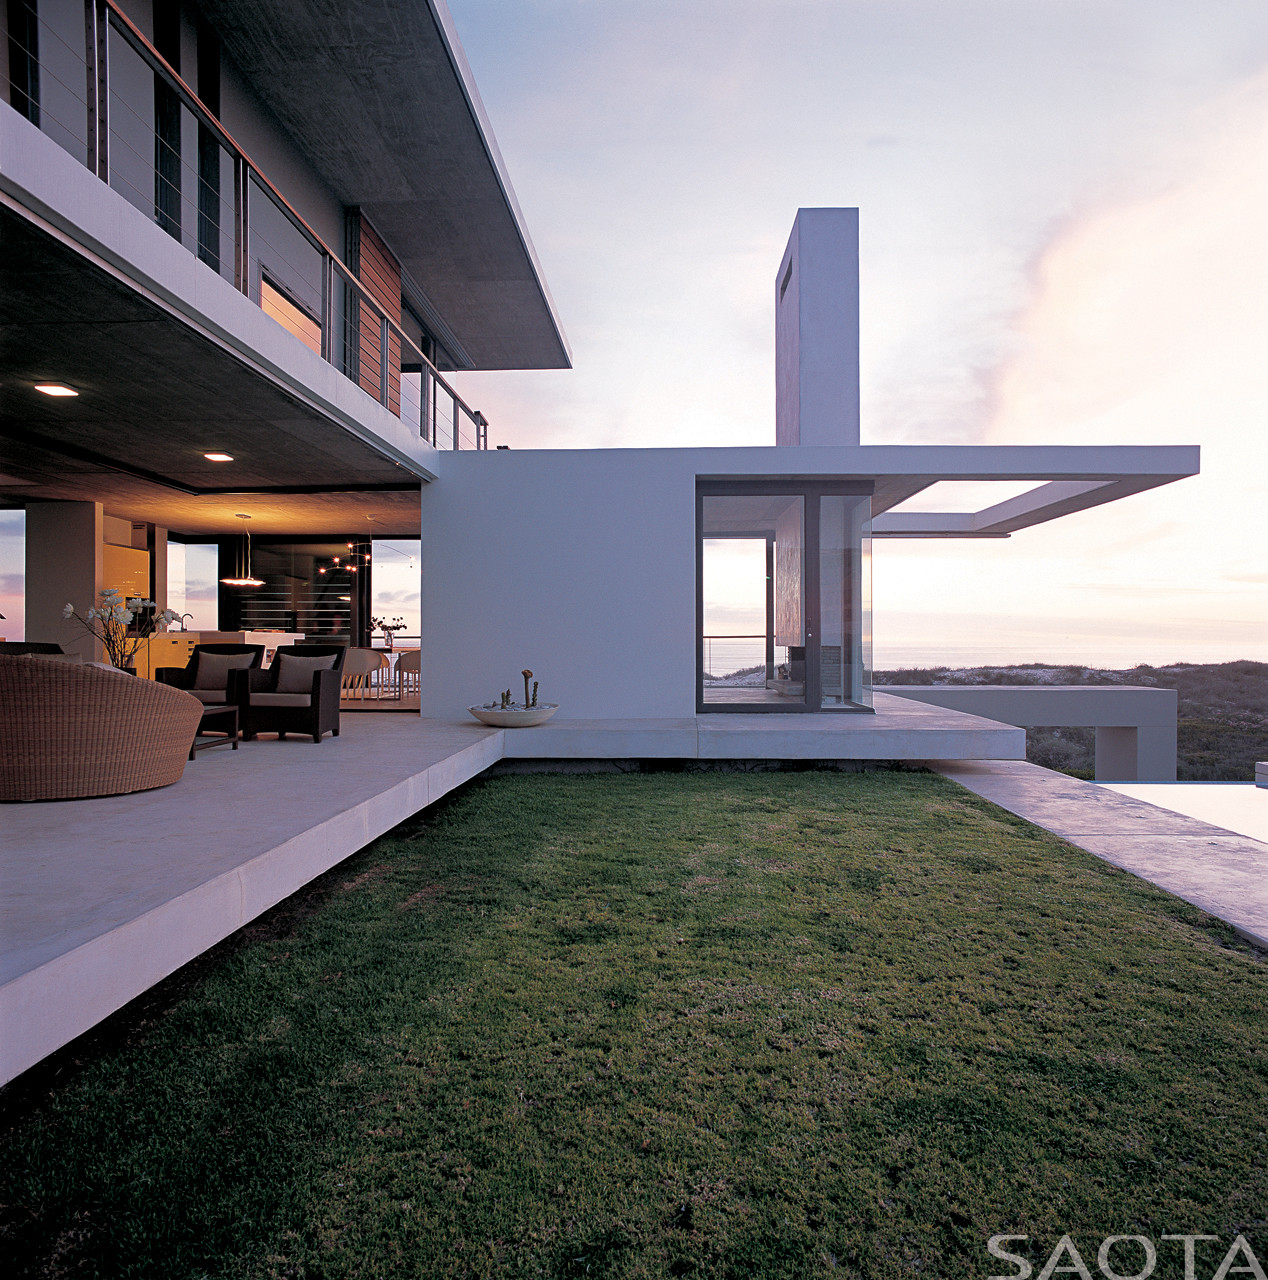 Vame / SAOTA, Courtesy of SAOTA